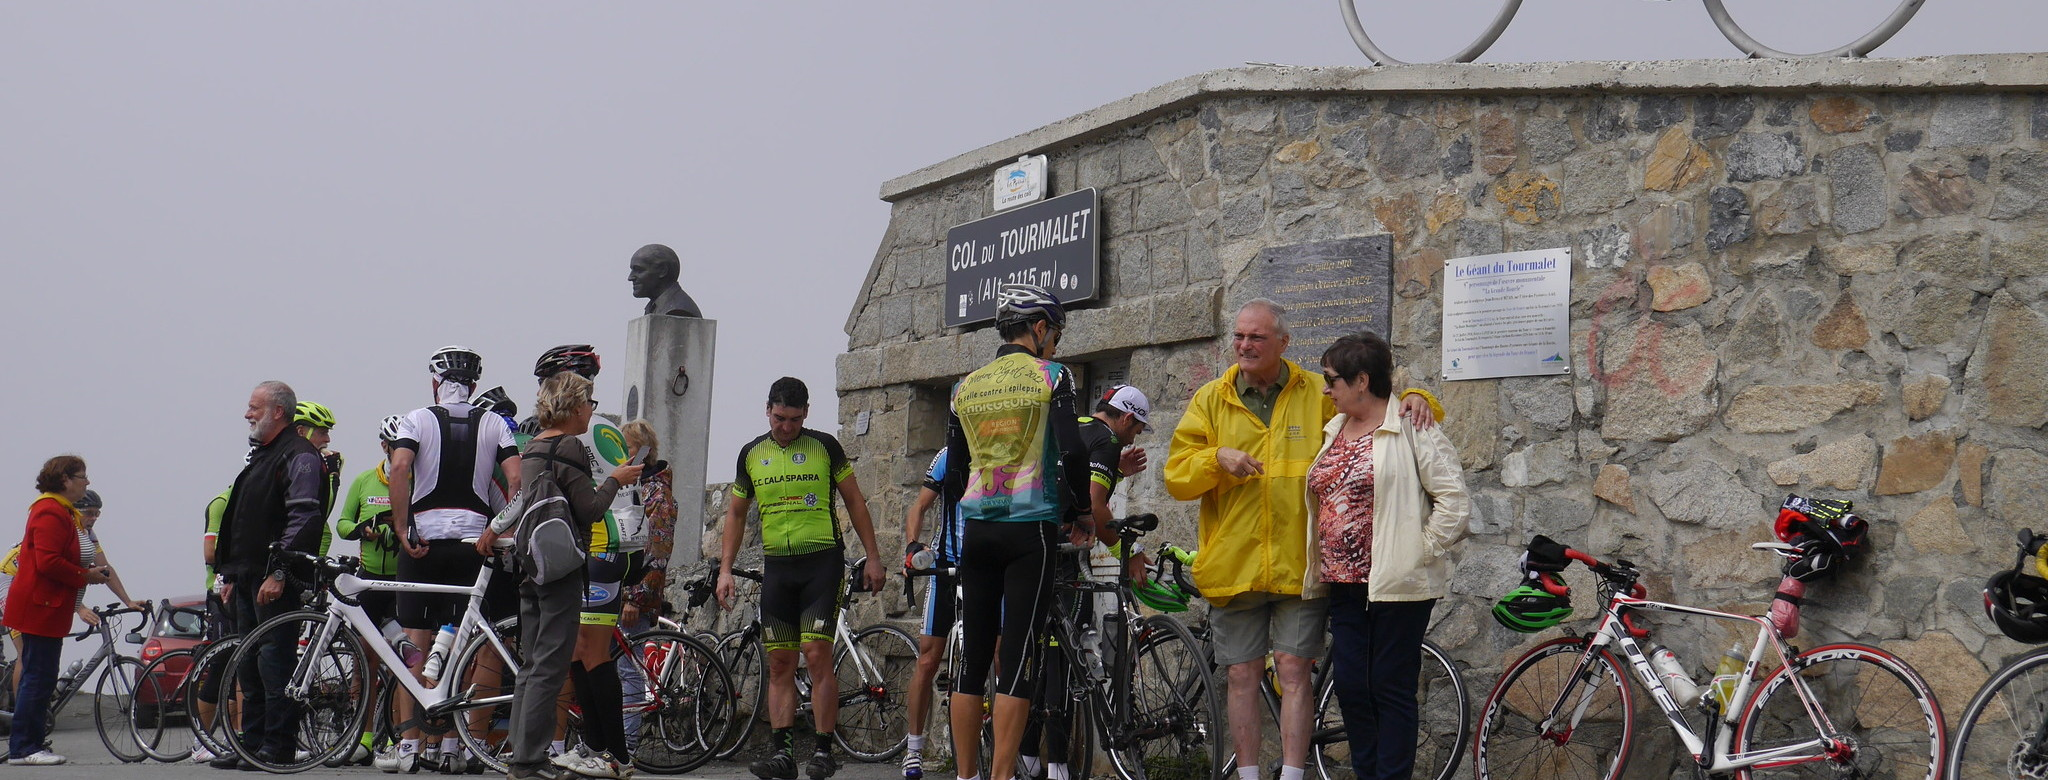 On the Tourmalet.